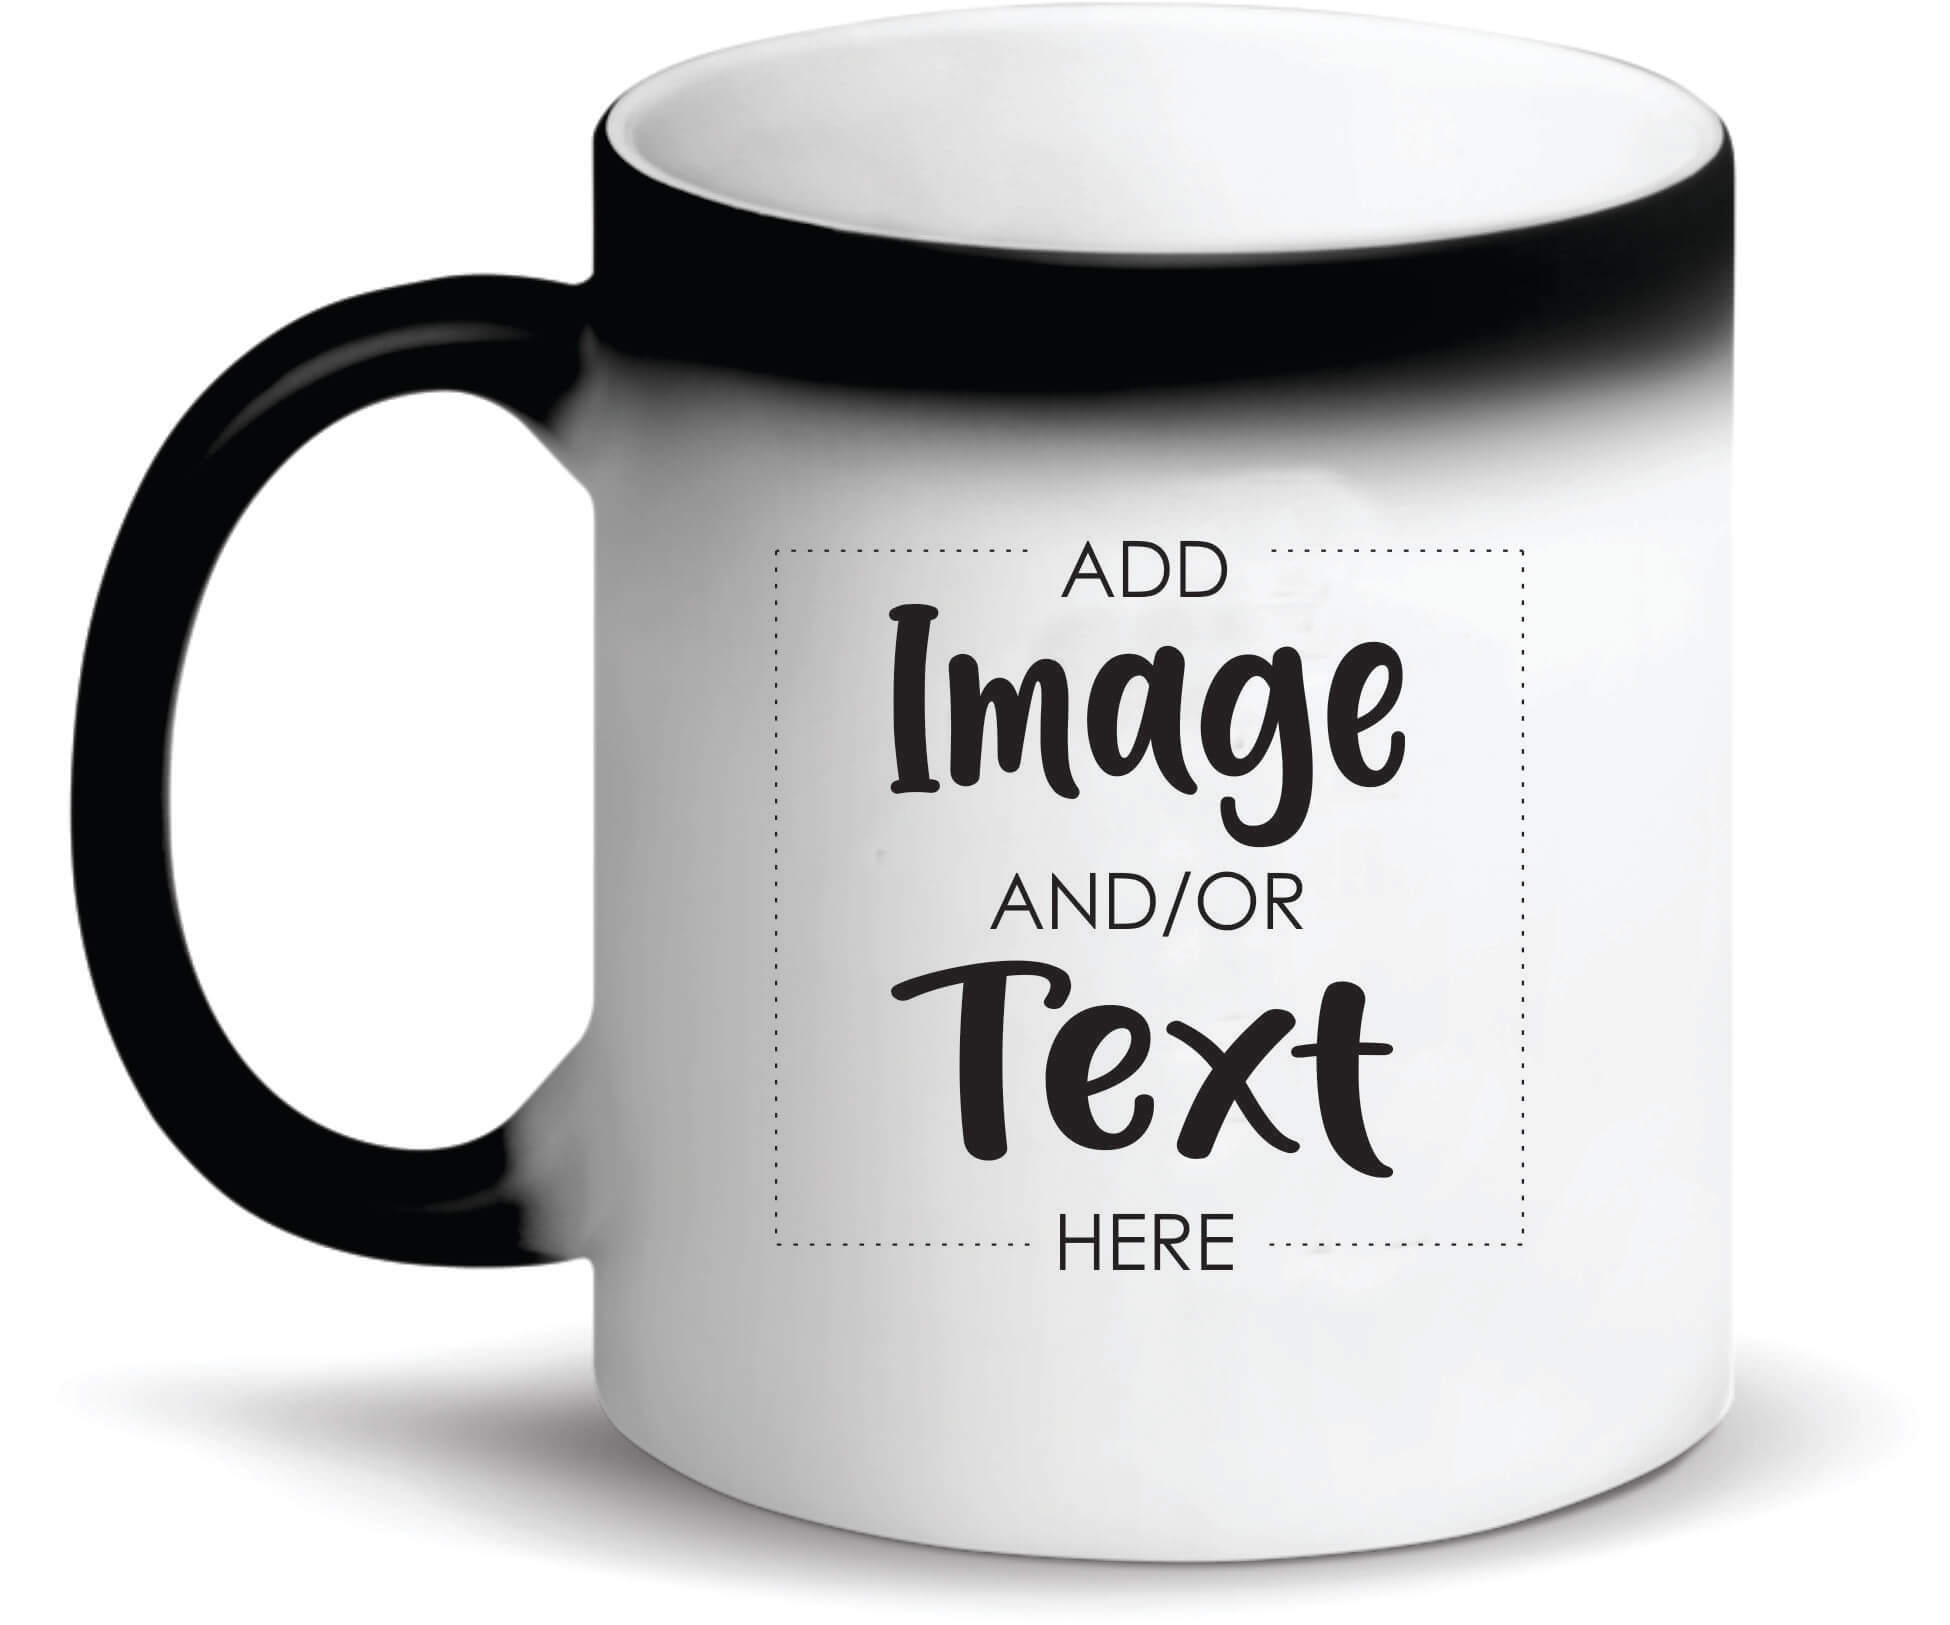 Custom Printed Color Changing Mug